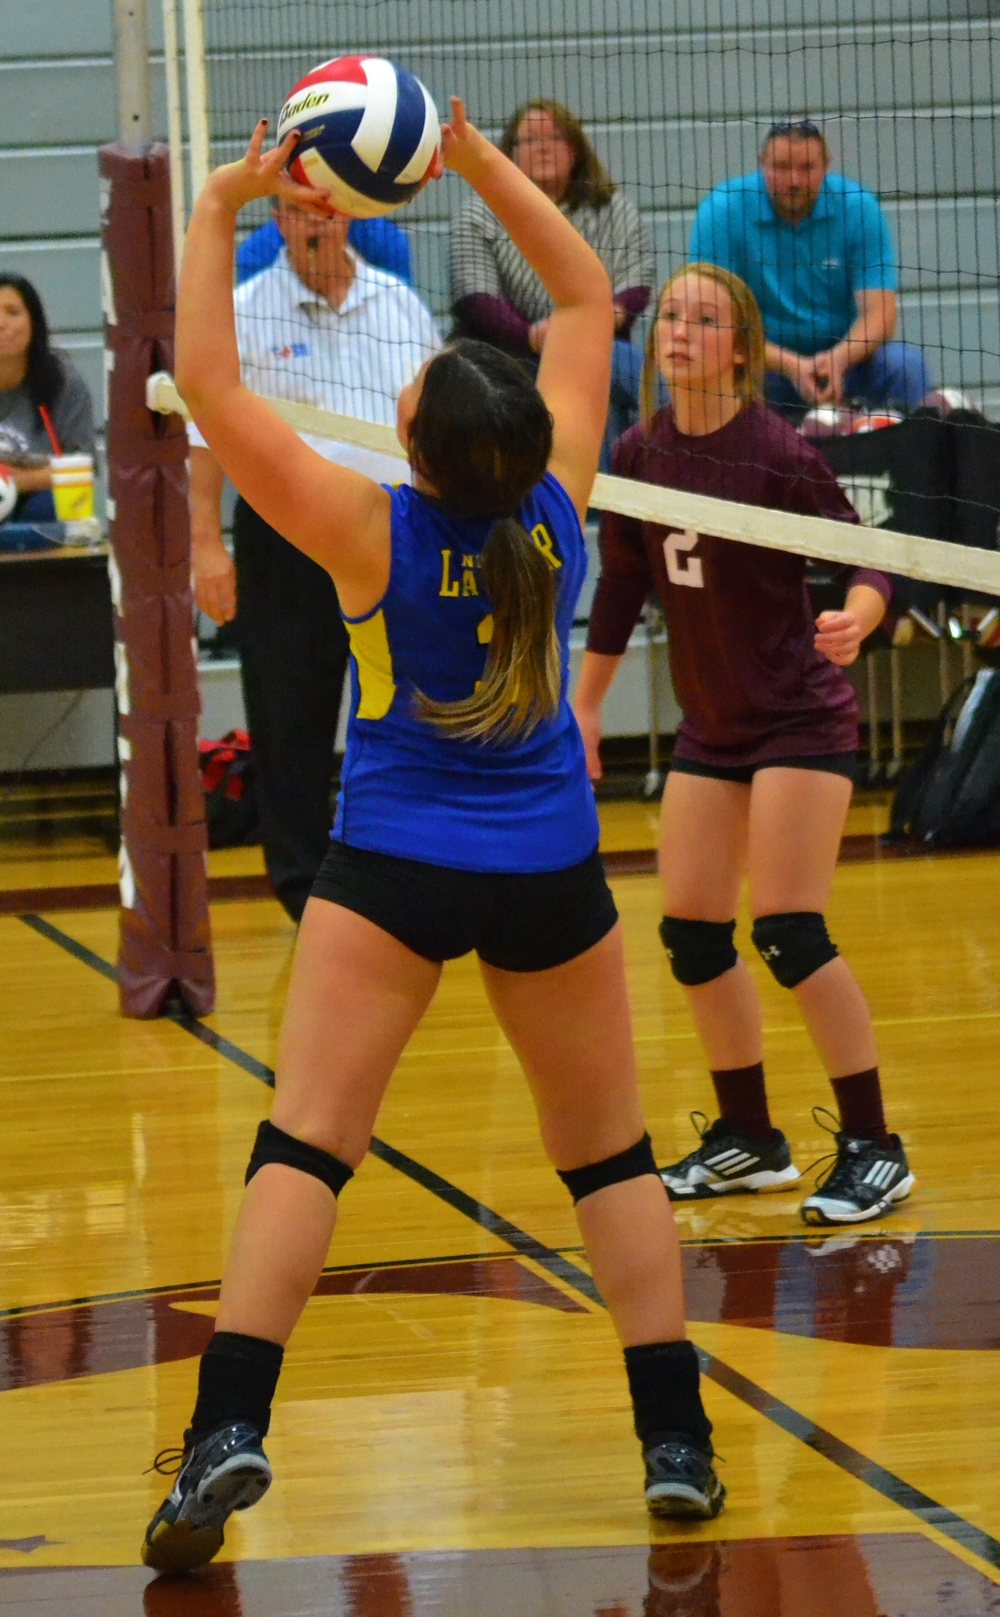 (Photo by Beverly White) Freshman Kimber Scott setting the ball against Atlanta